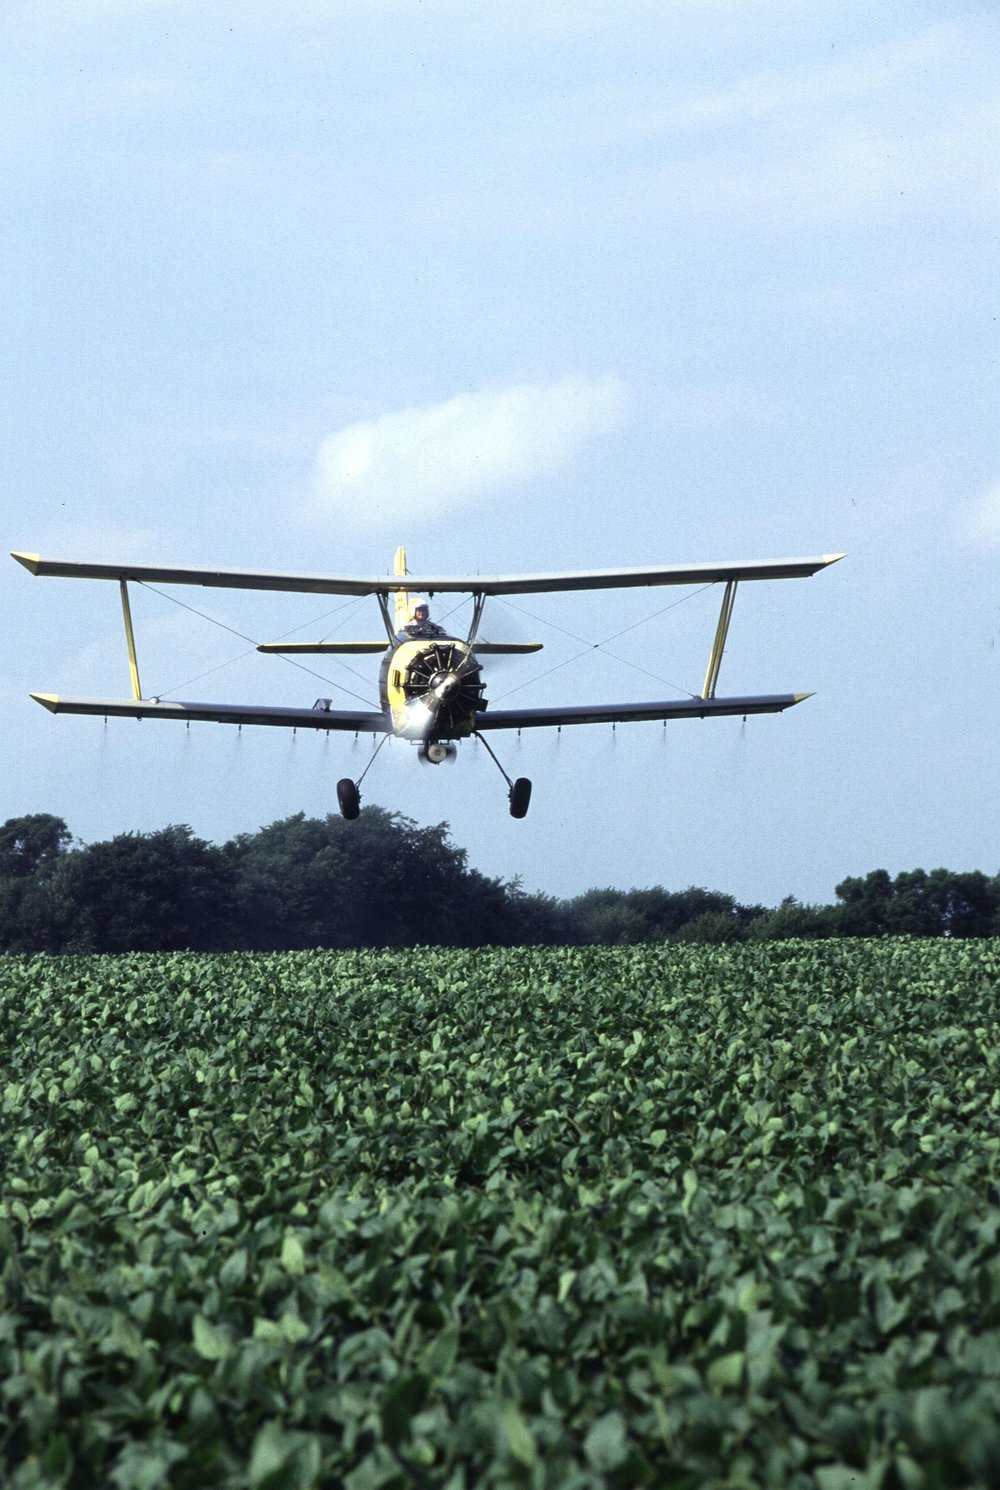 Biplane crop duster over an American soybean field, 2010. Photograph by Ken Hammond, U.S. Department of Agriculture.